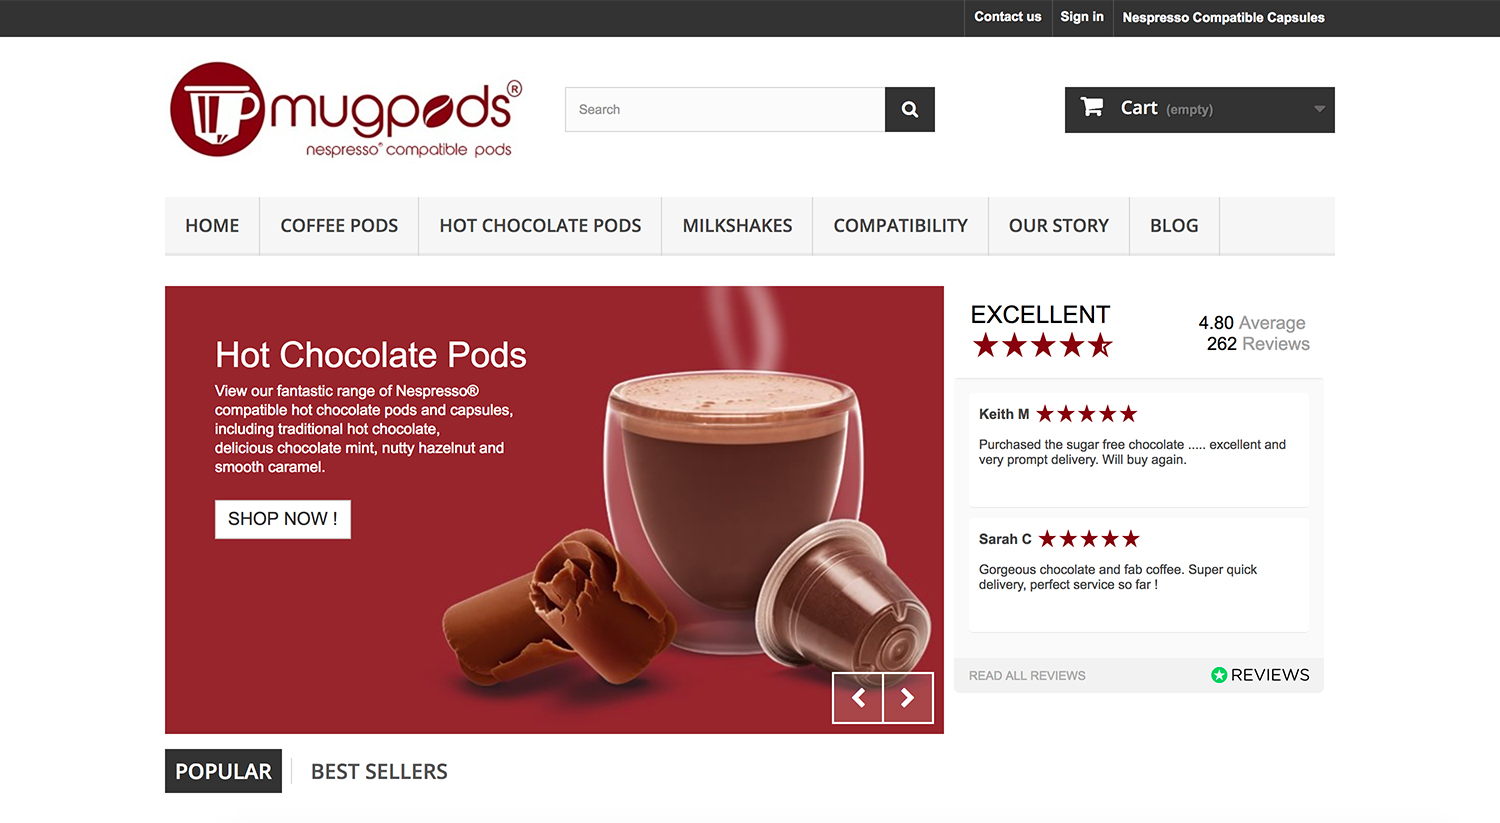 mugpods Home Page